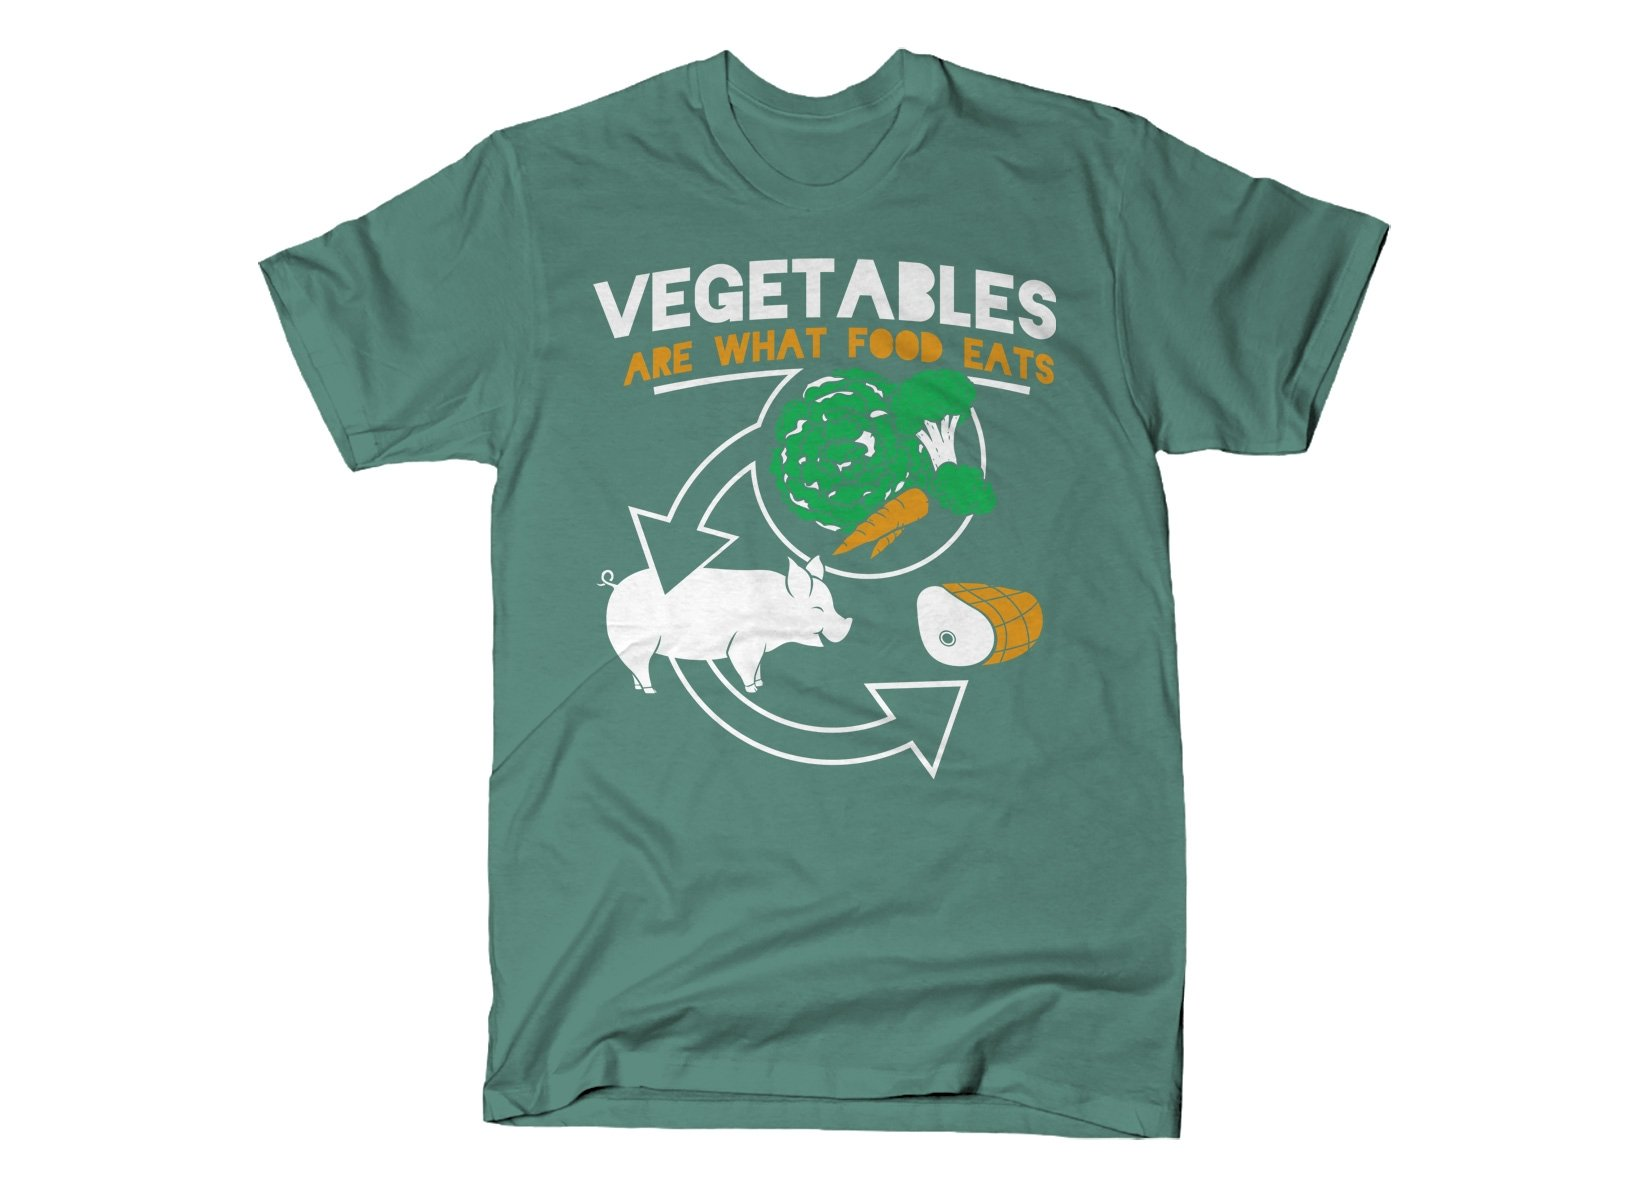 Vegetables Are What Food Eats on Mens T-Shirt